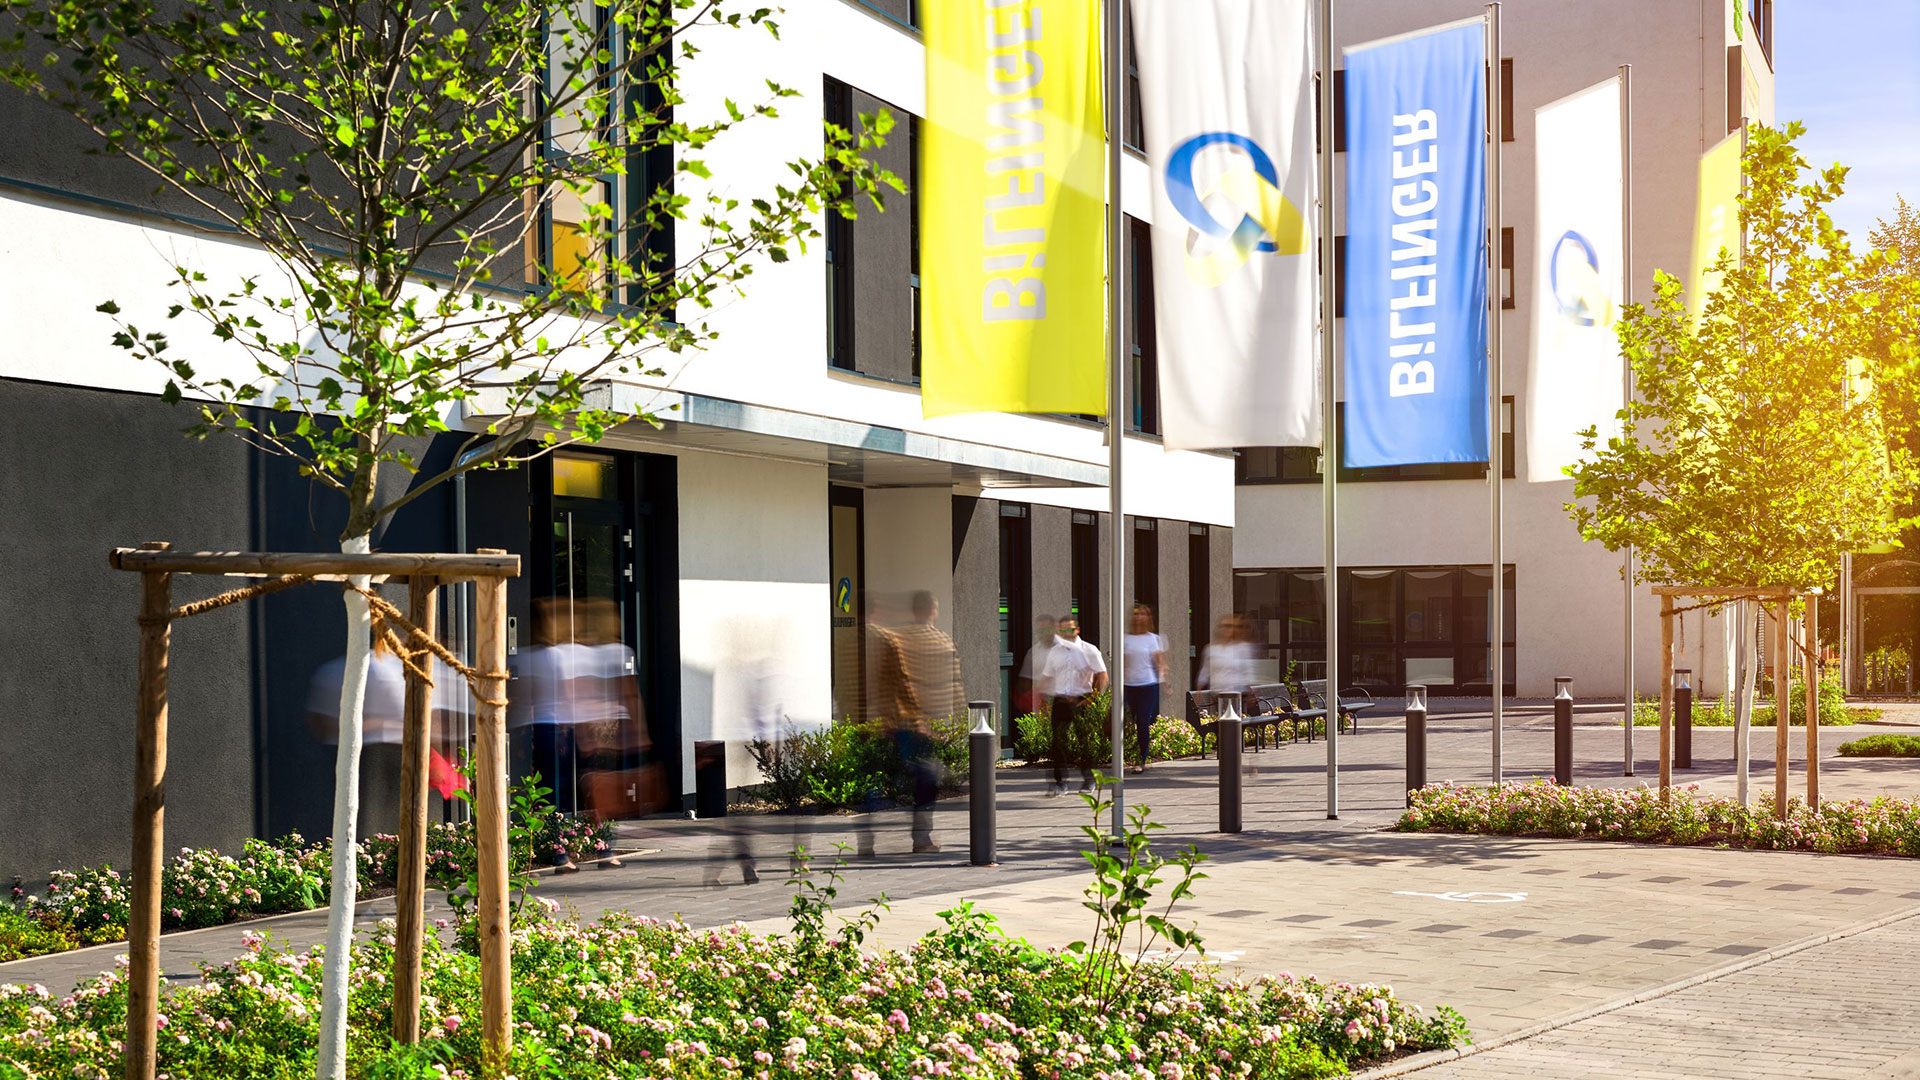 View of the entrance of the Bilfinger headquarters in Mannheim, Germany